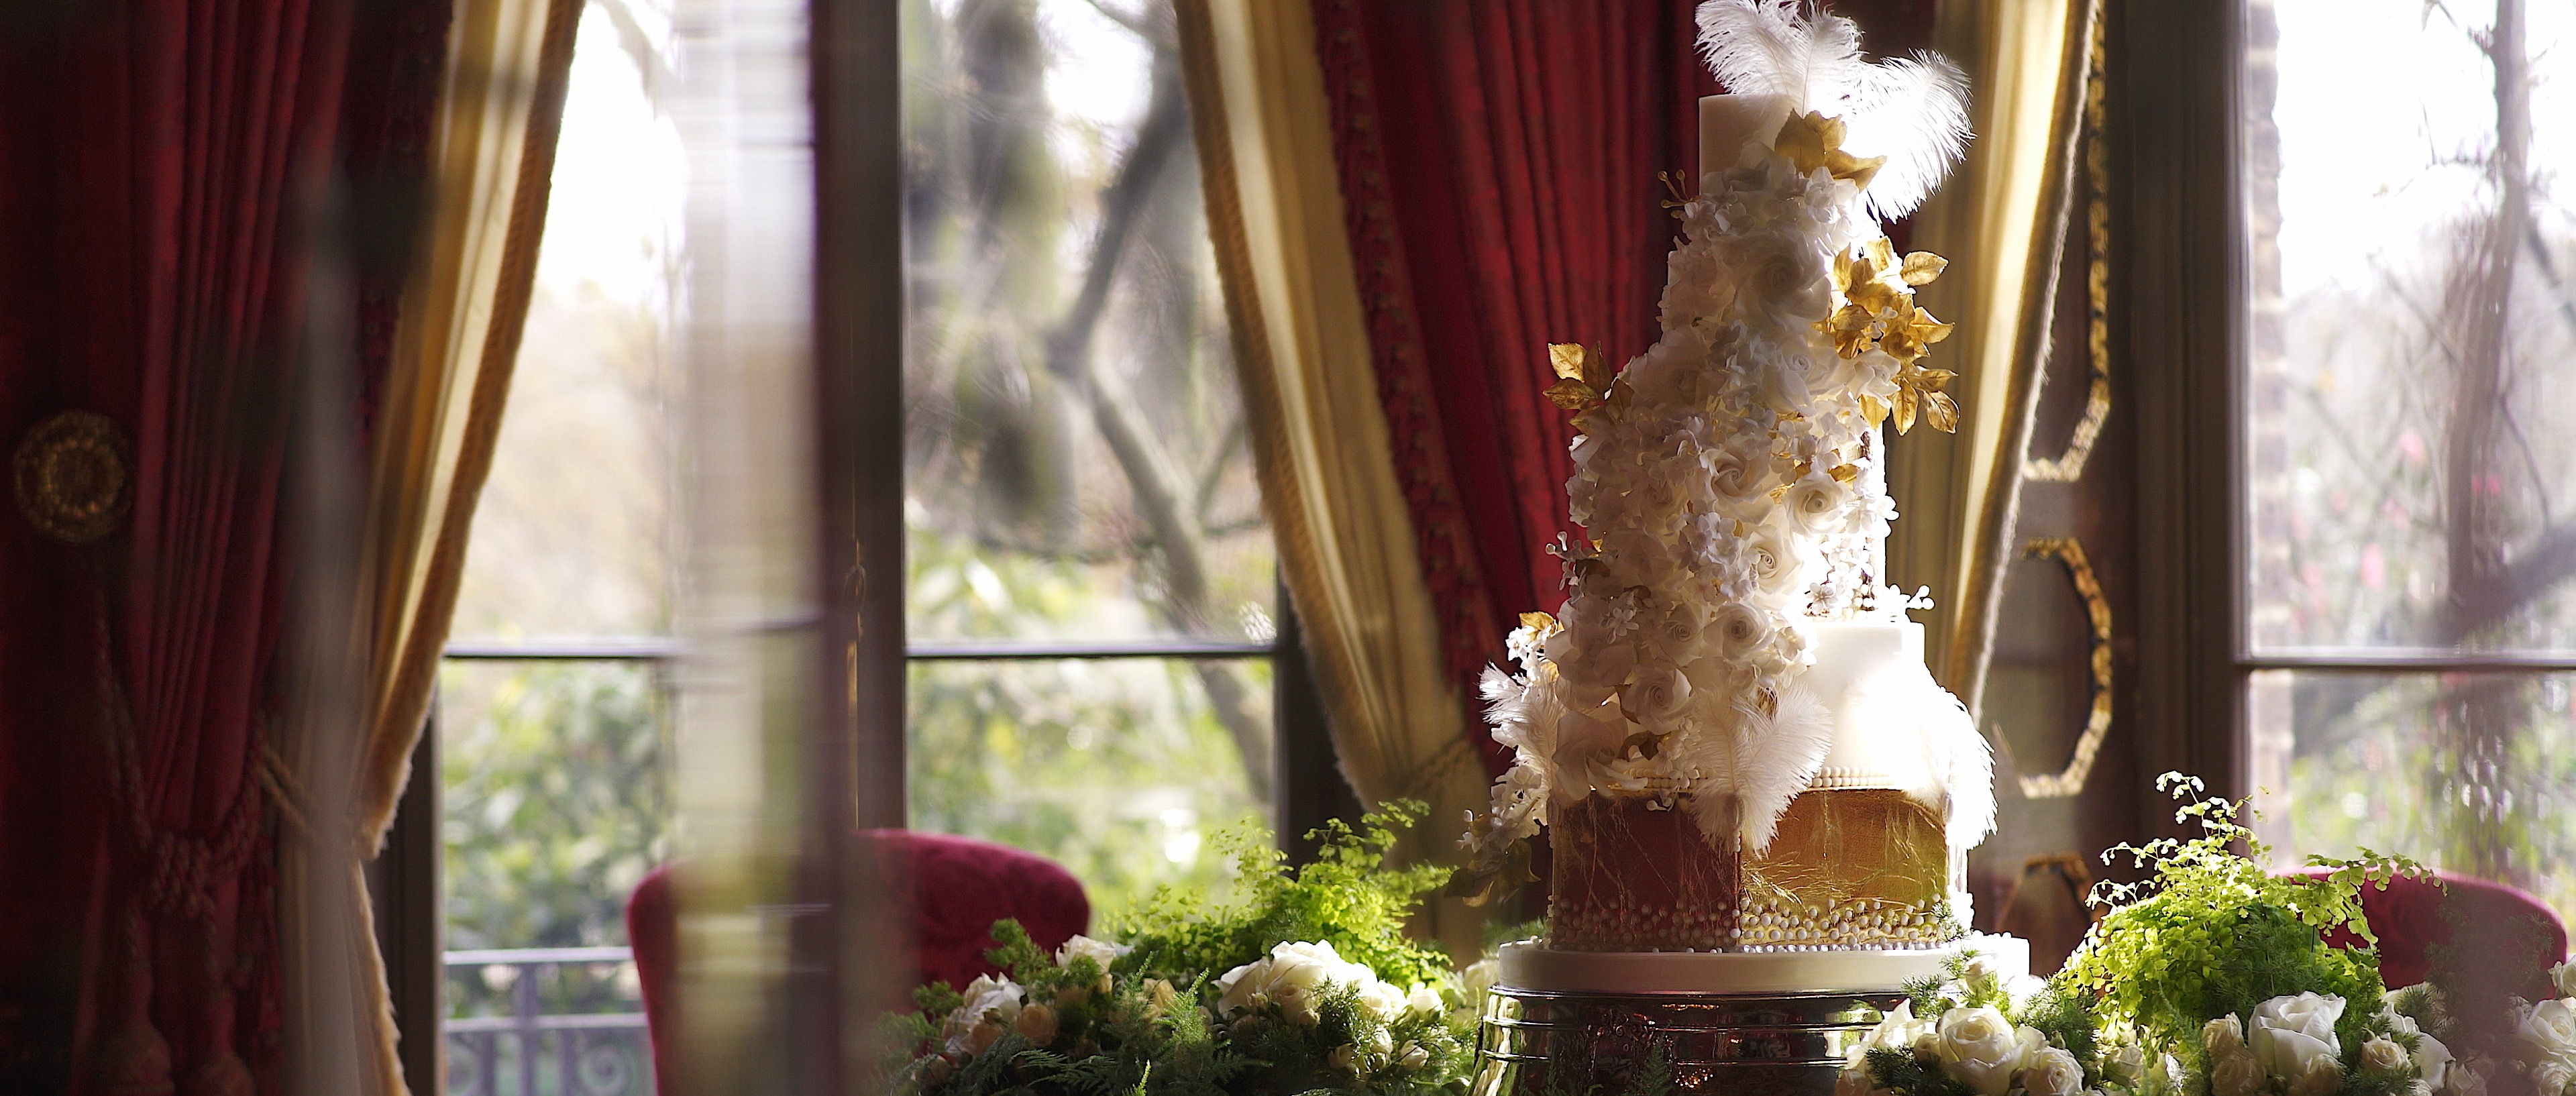 WEDDING AT THE RITZ LONDON CAKES BY KRISHANTHI